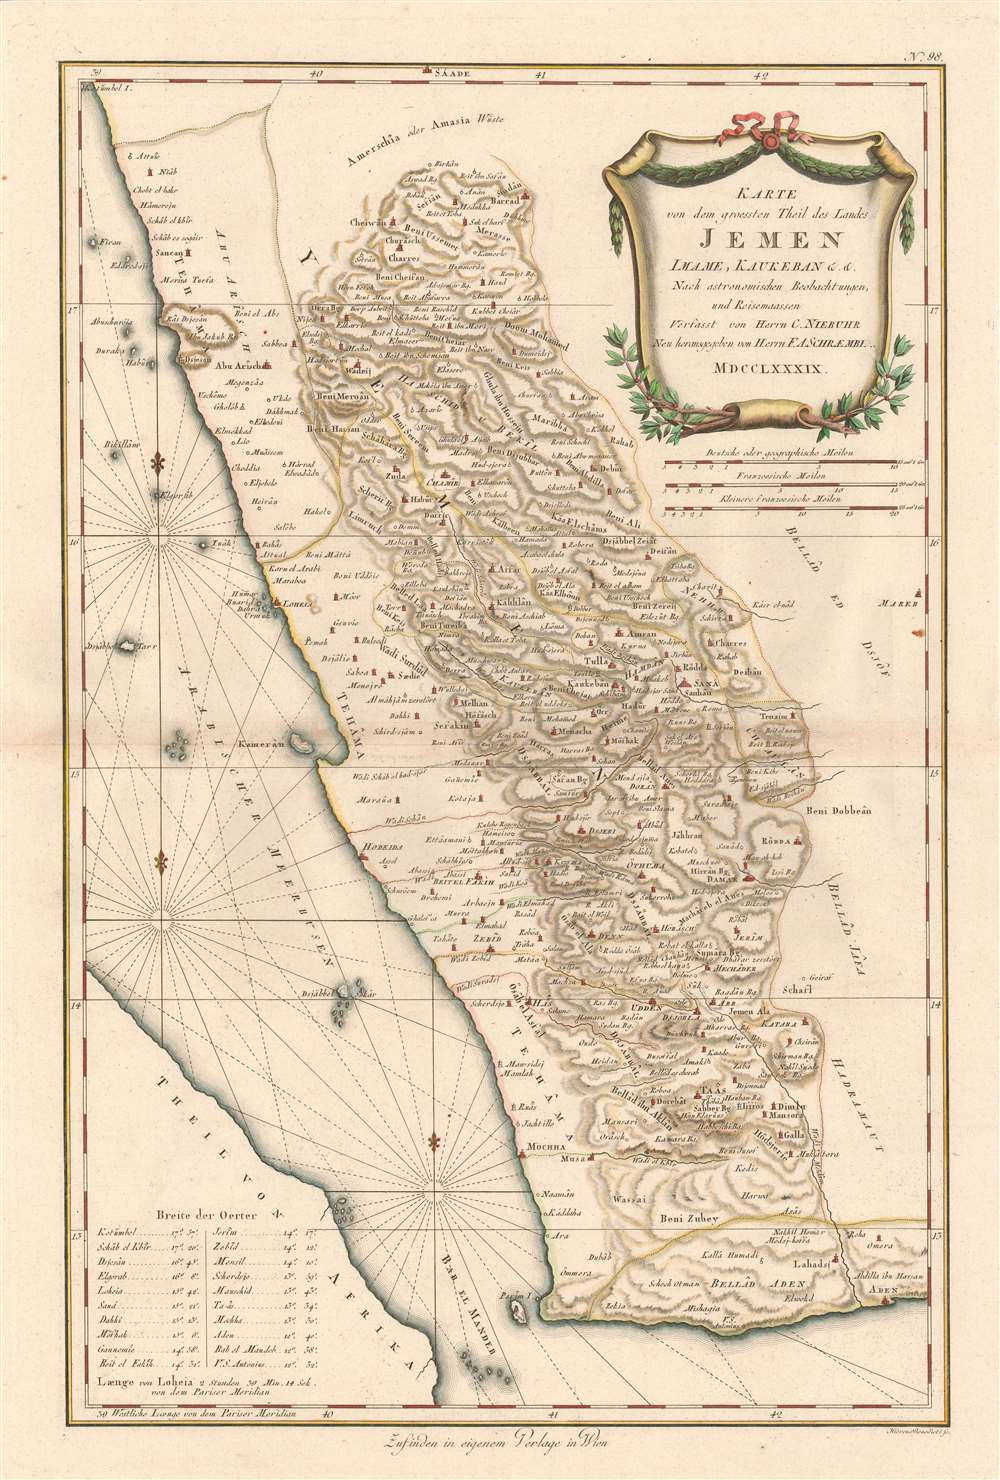 16x20 Persia and Arabia 1666 Historic Middle East Exploration Map